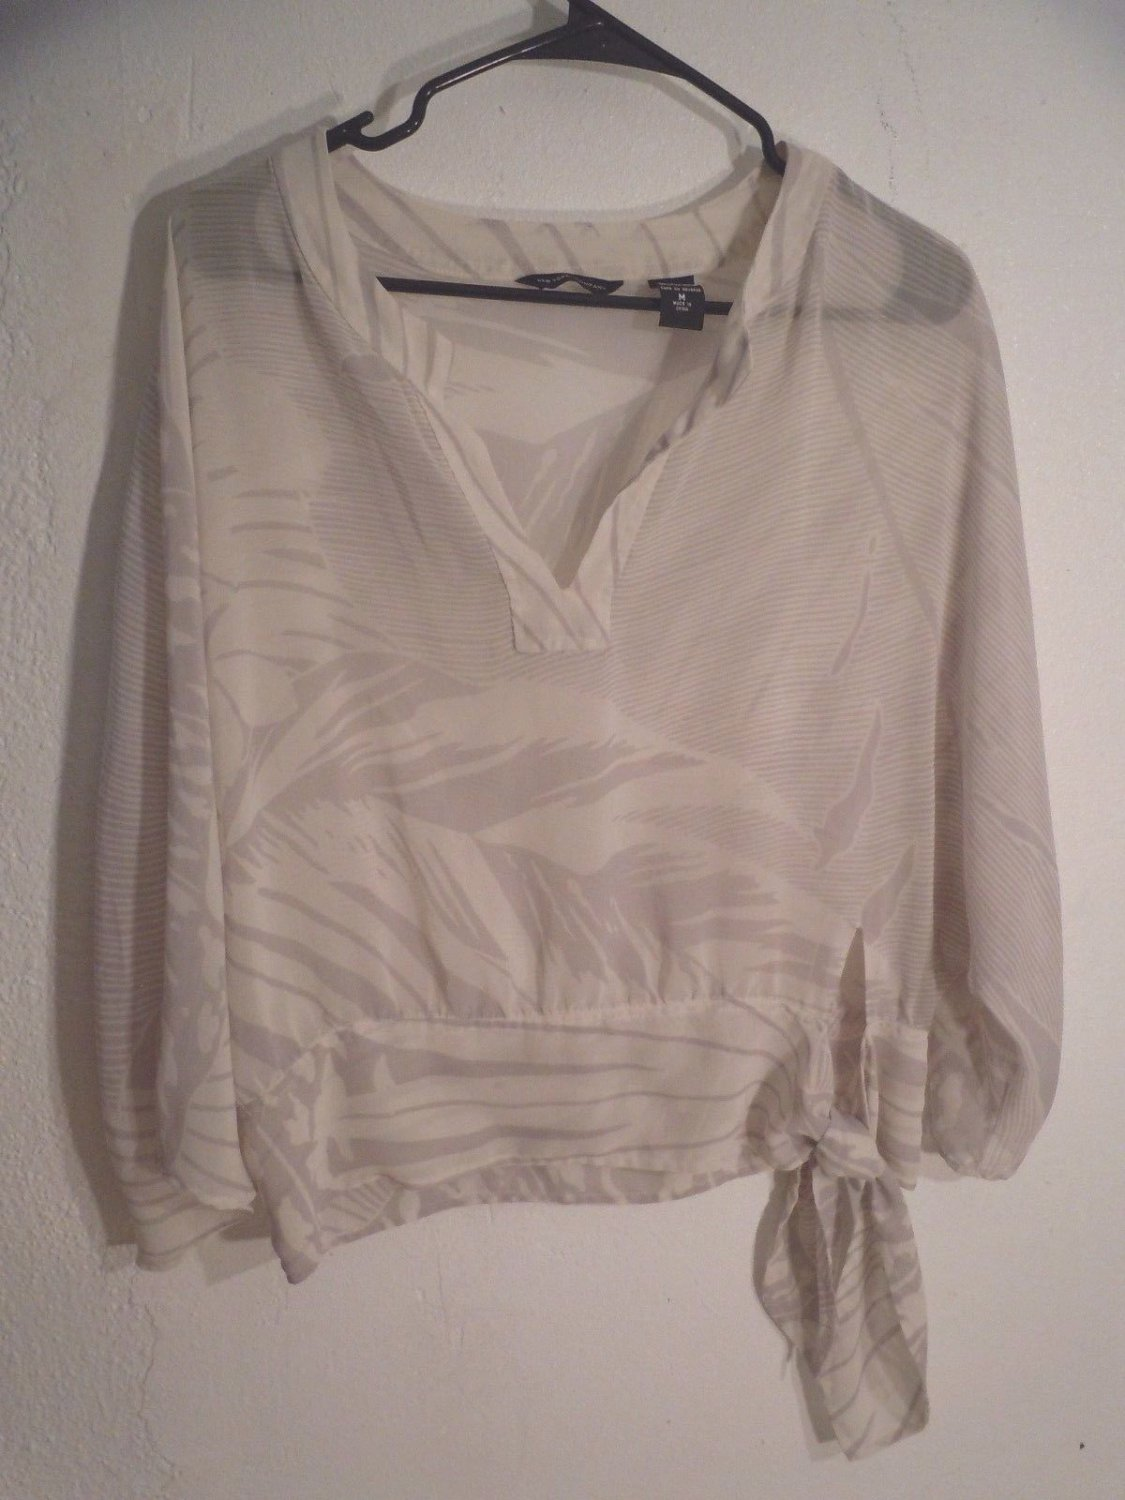 New York & Company sheer ivory blouse top size M